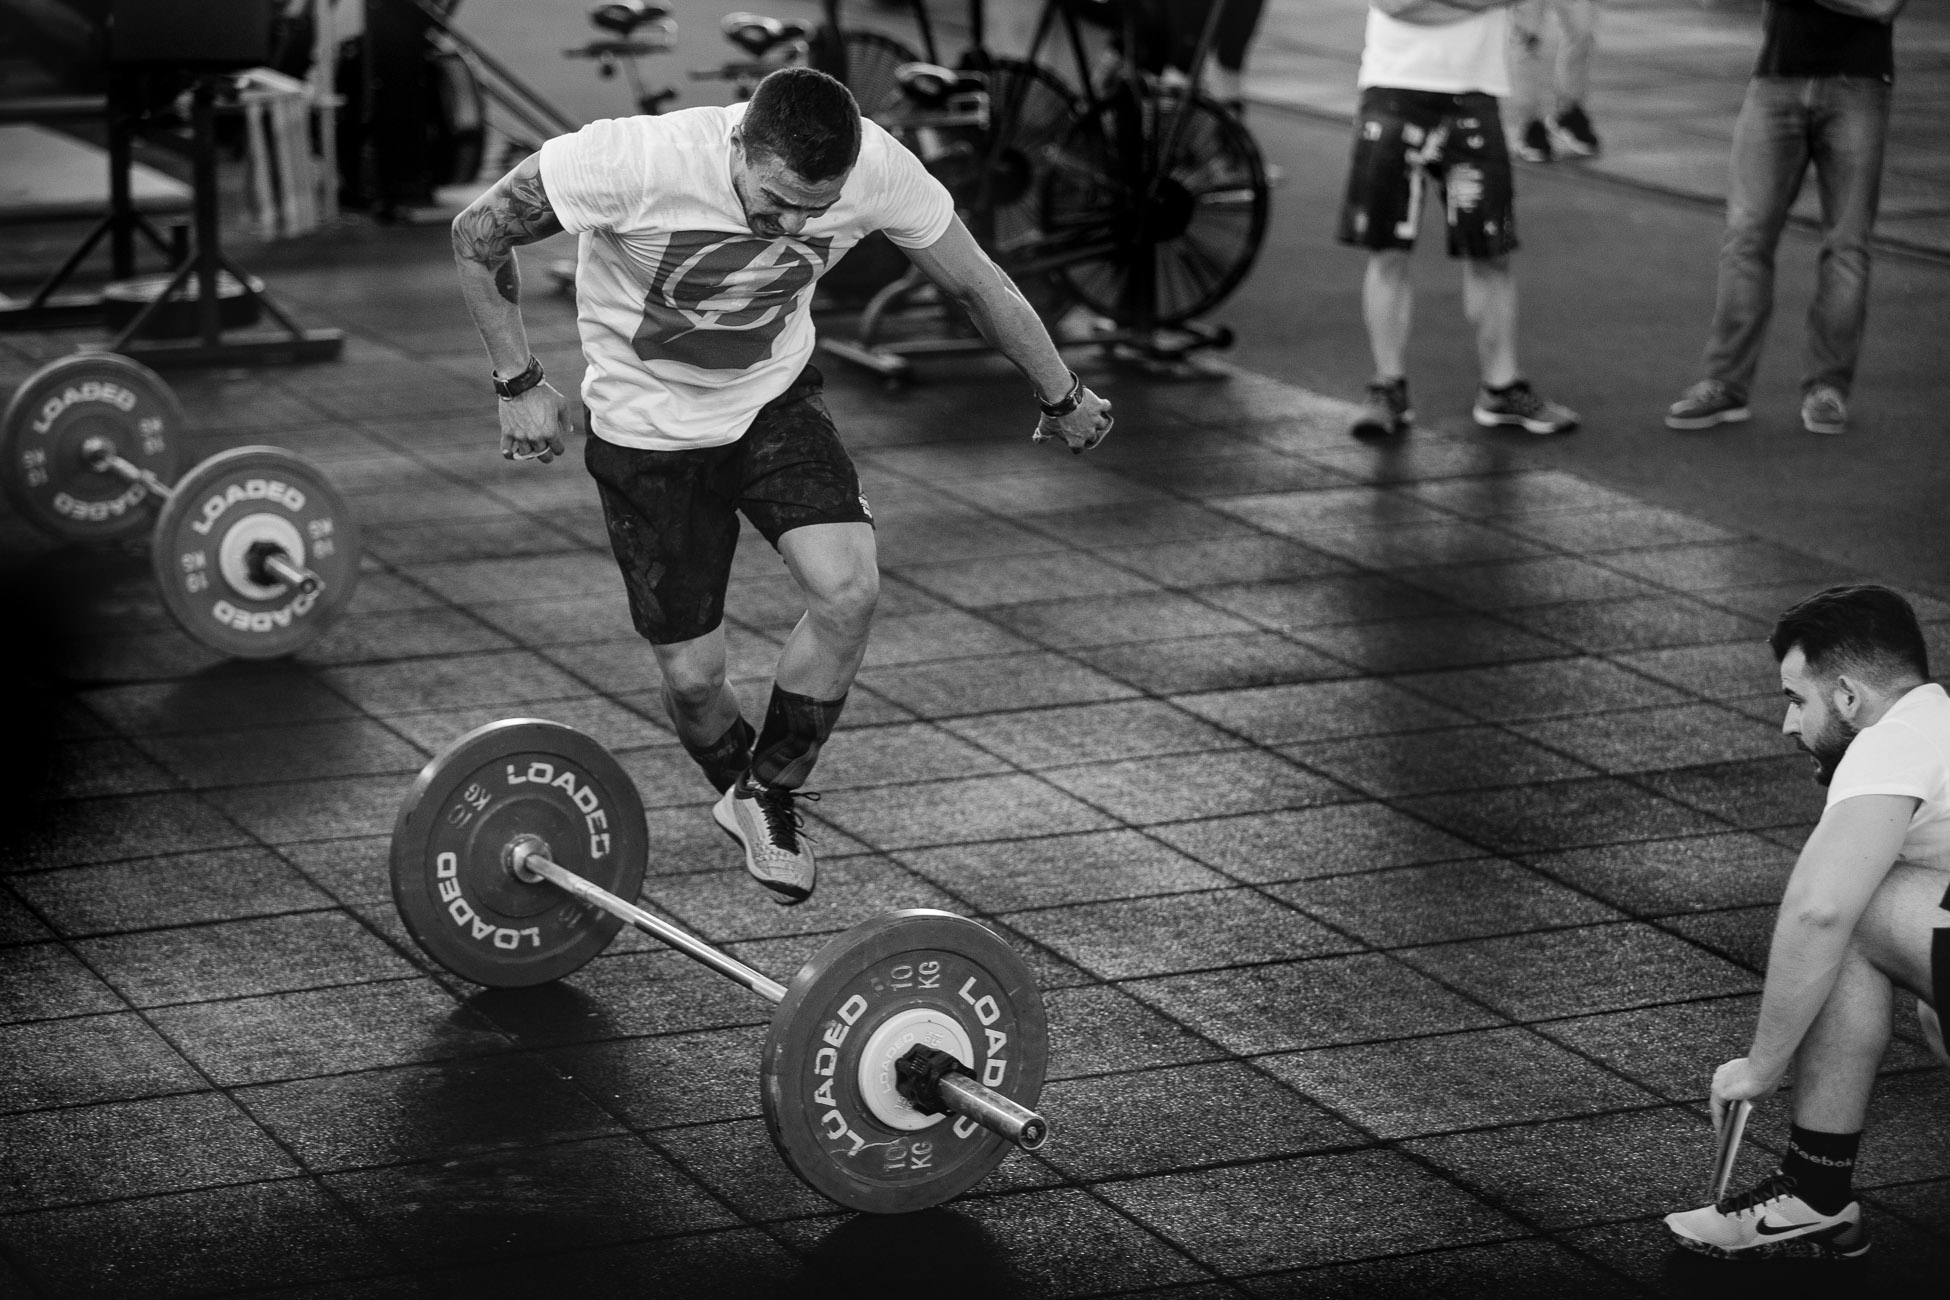 crossfit-games-open-fitness-athlete-photography-005.jpg